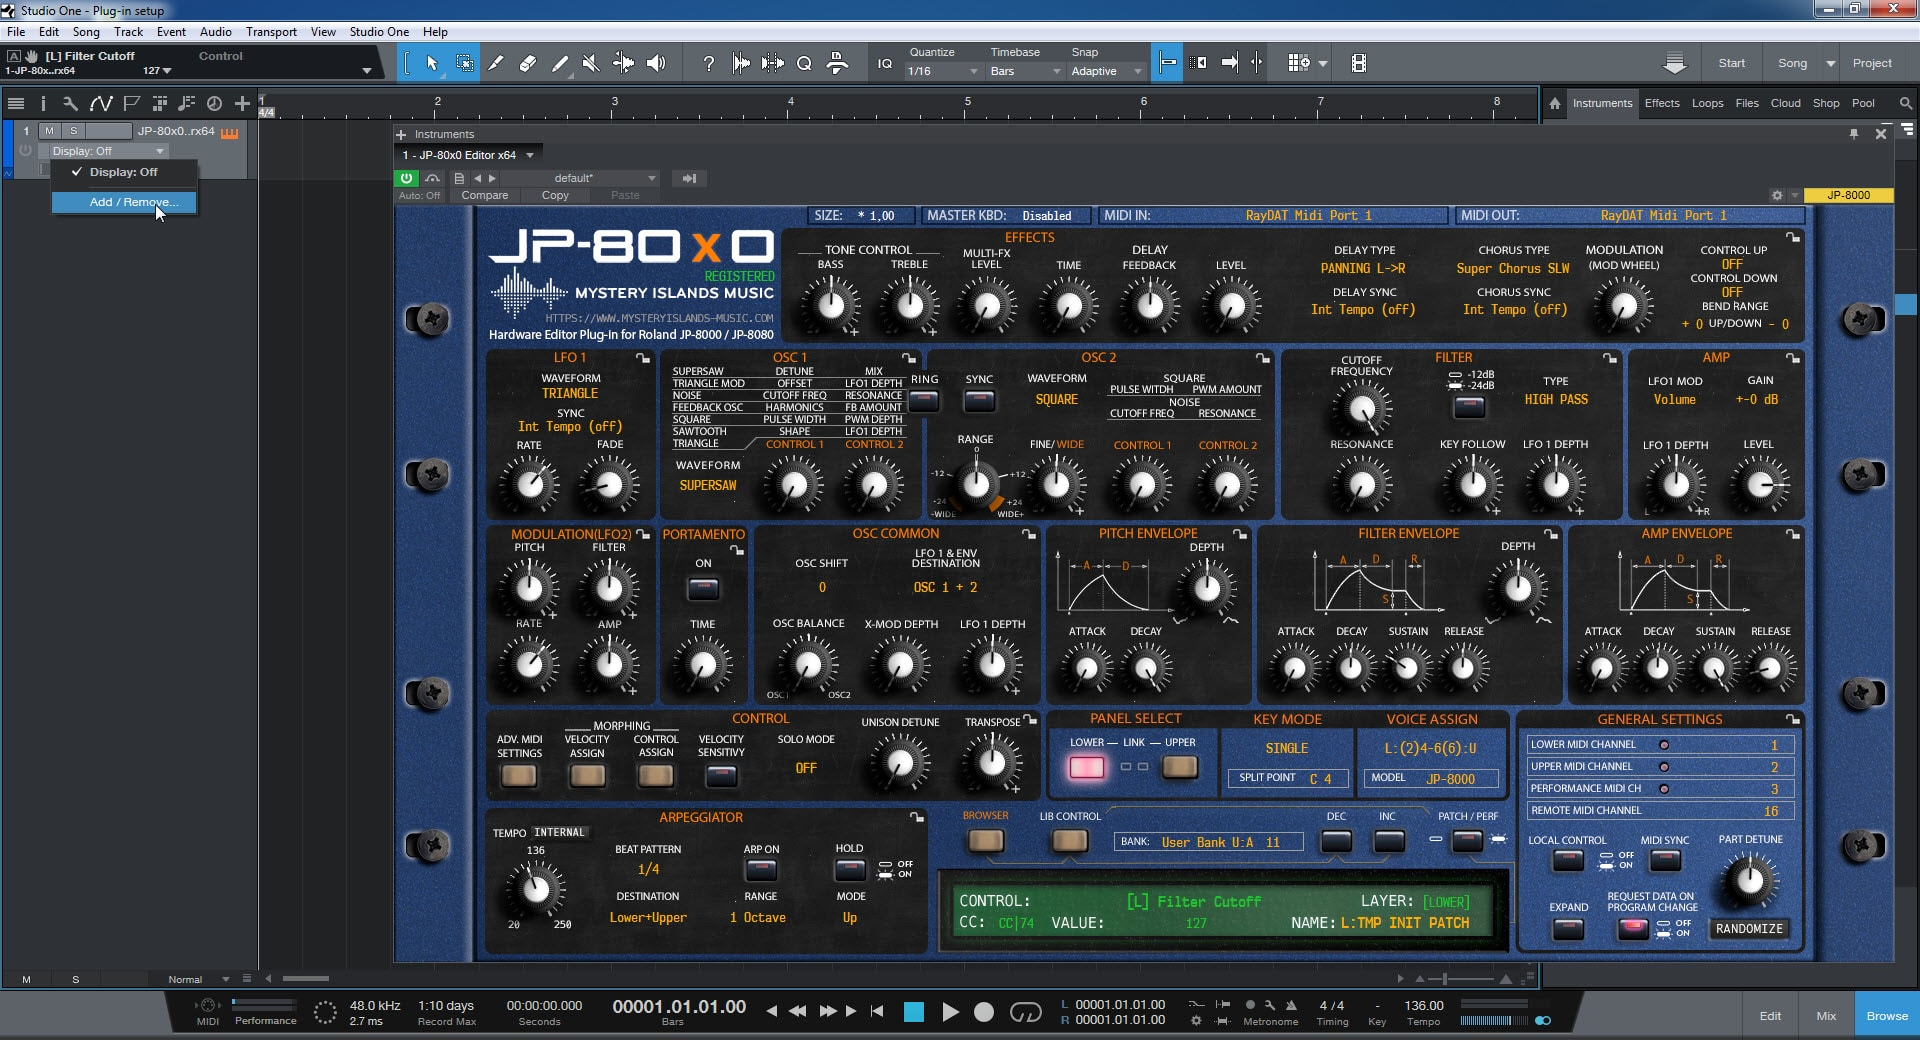 Studio One Config - Click to Add Parameters for Automation